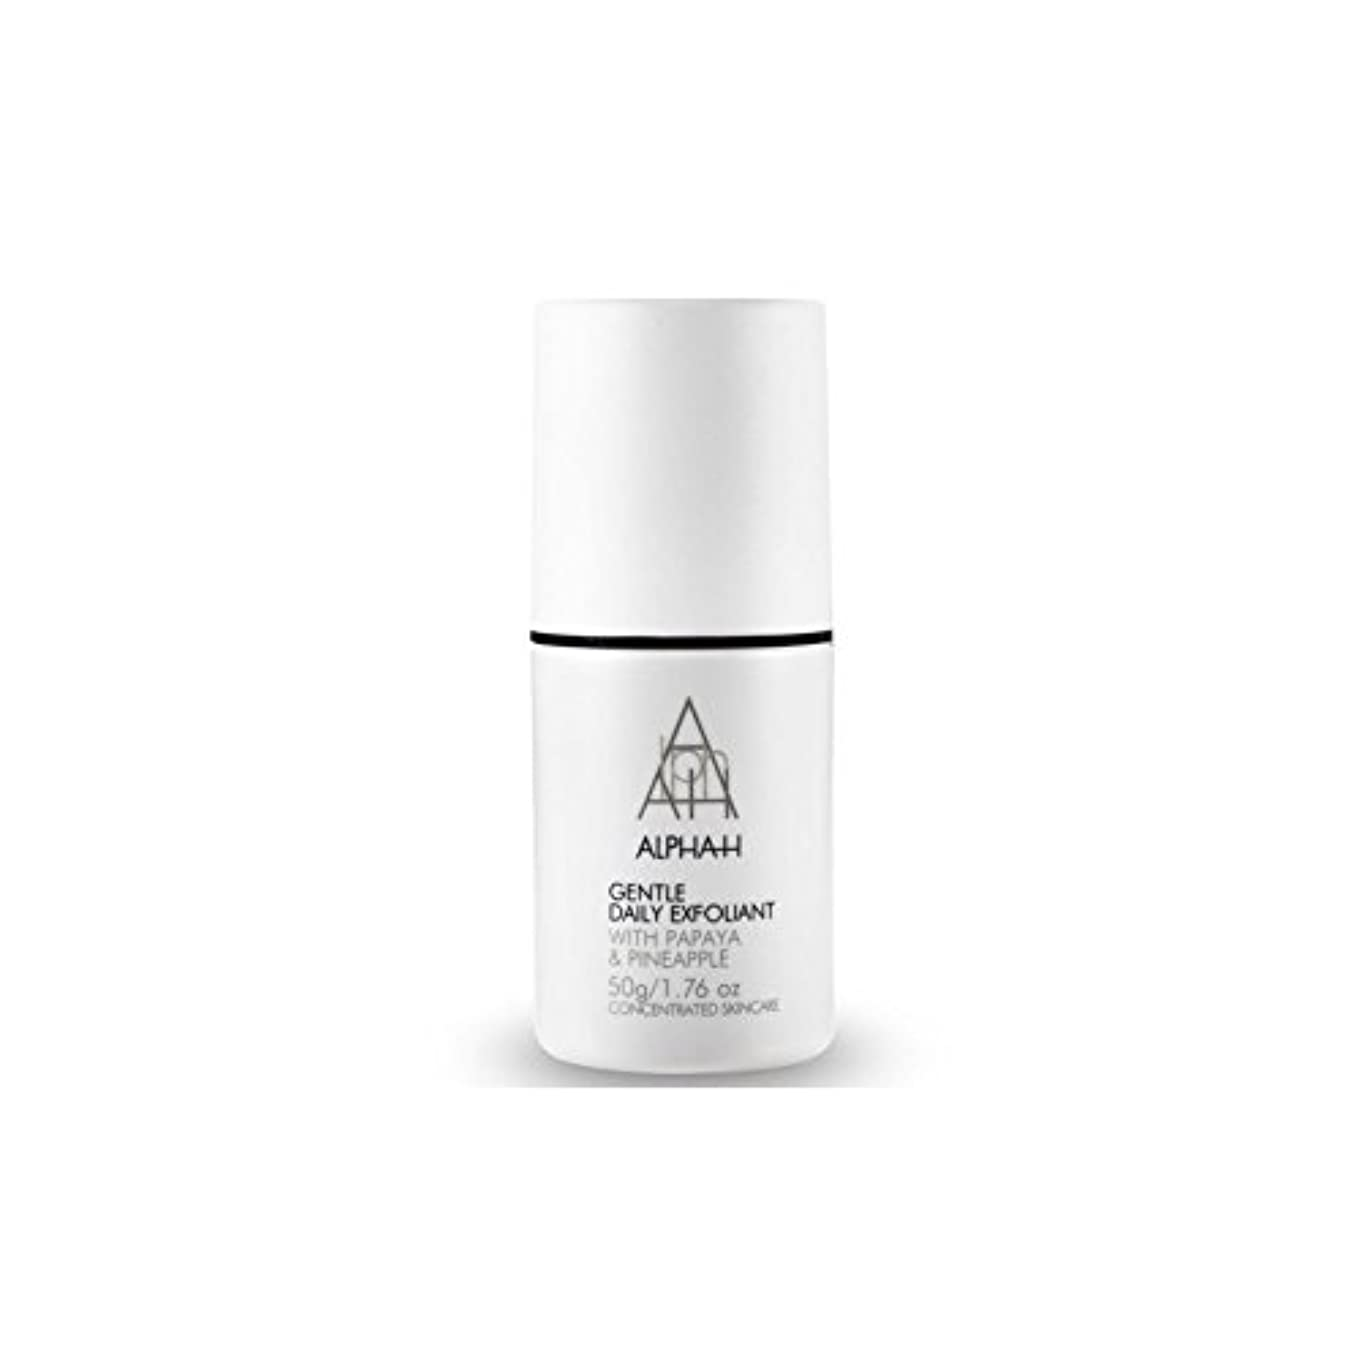 Alpha-H Gentle Daily Exfoliant (50G) (Pack of 6) - アルファ - 時間穏やか毎日の角質(50グラム) x6 [並行輸入品]